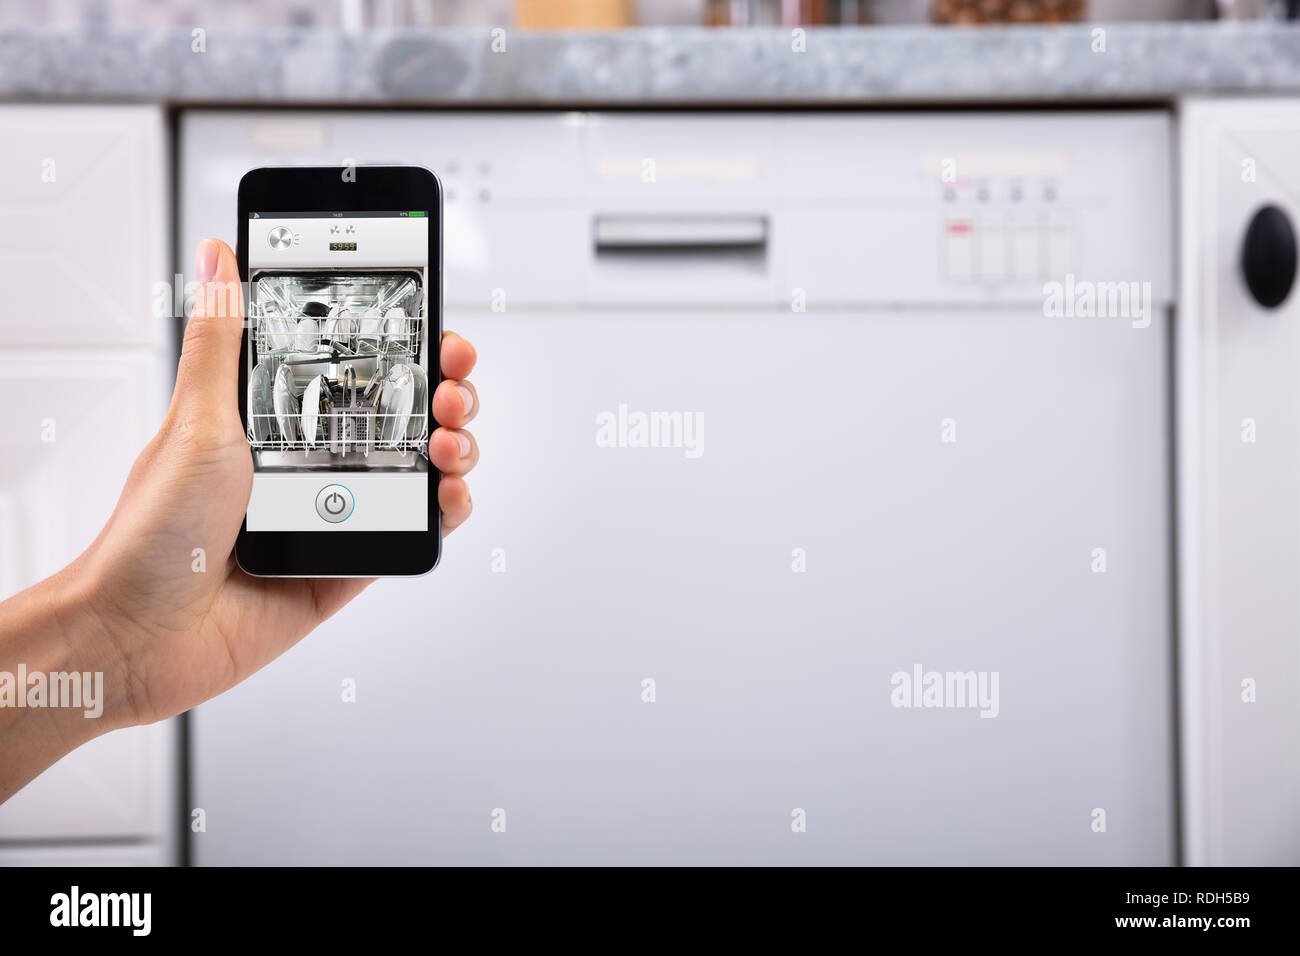 Close-up Of A Woman's Hand Operating Dishwasher With Mobile Phone - Stock Image